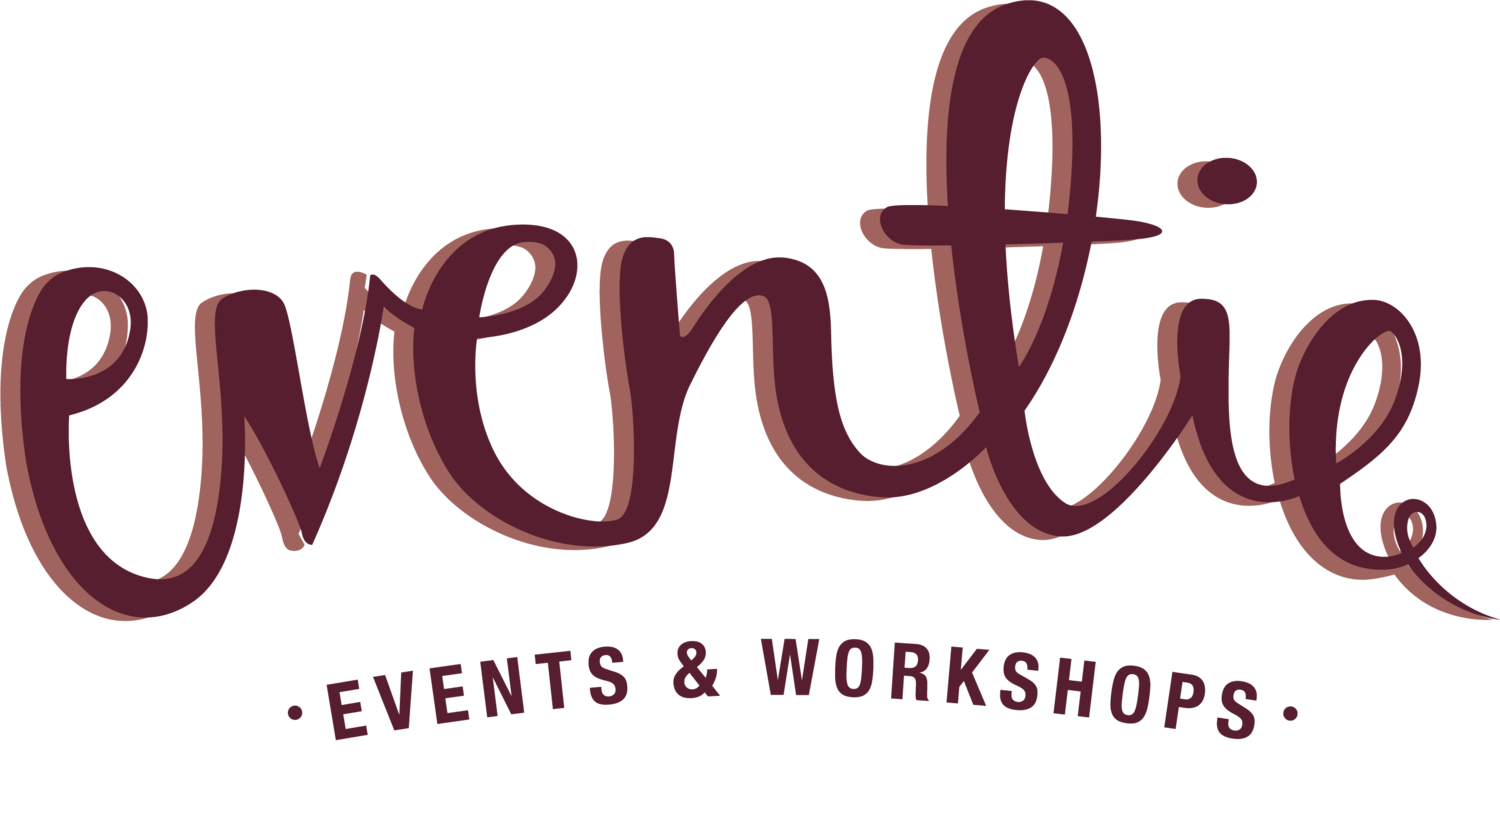 Eventie - Wedding & Event Planning and Vision Board Workshops